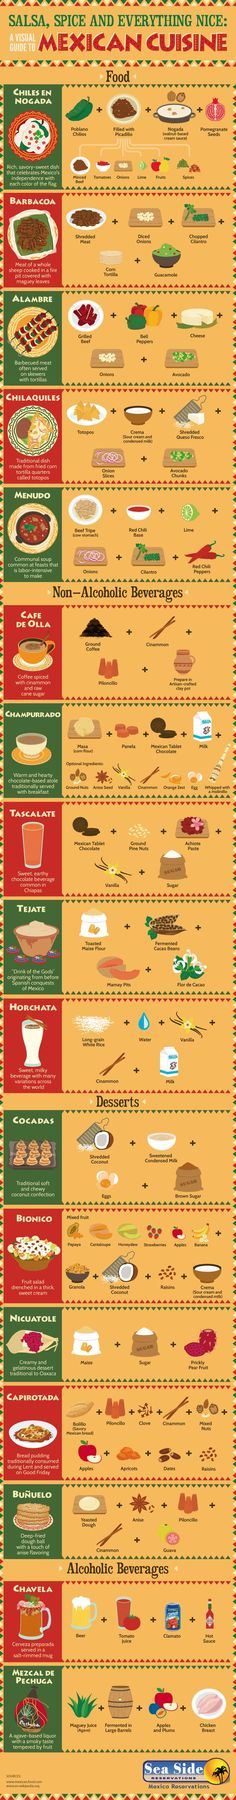 17 Special Mexican Recipes In One Infographic